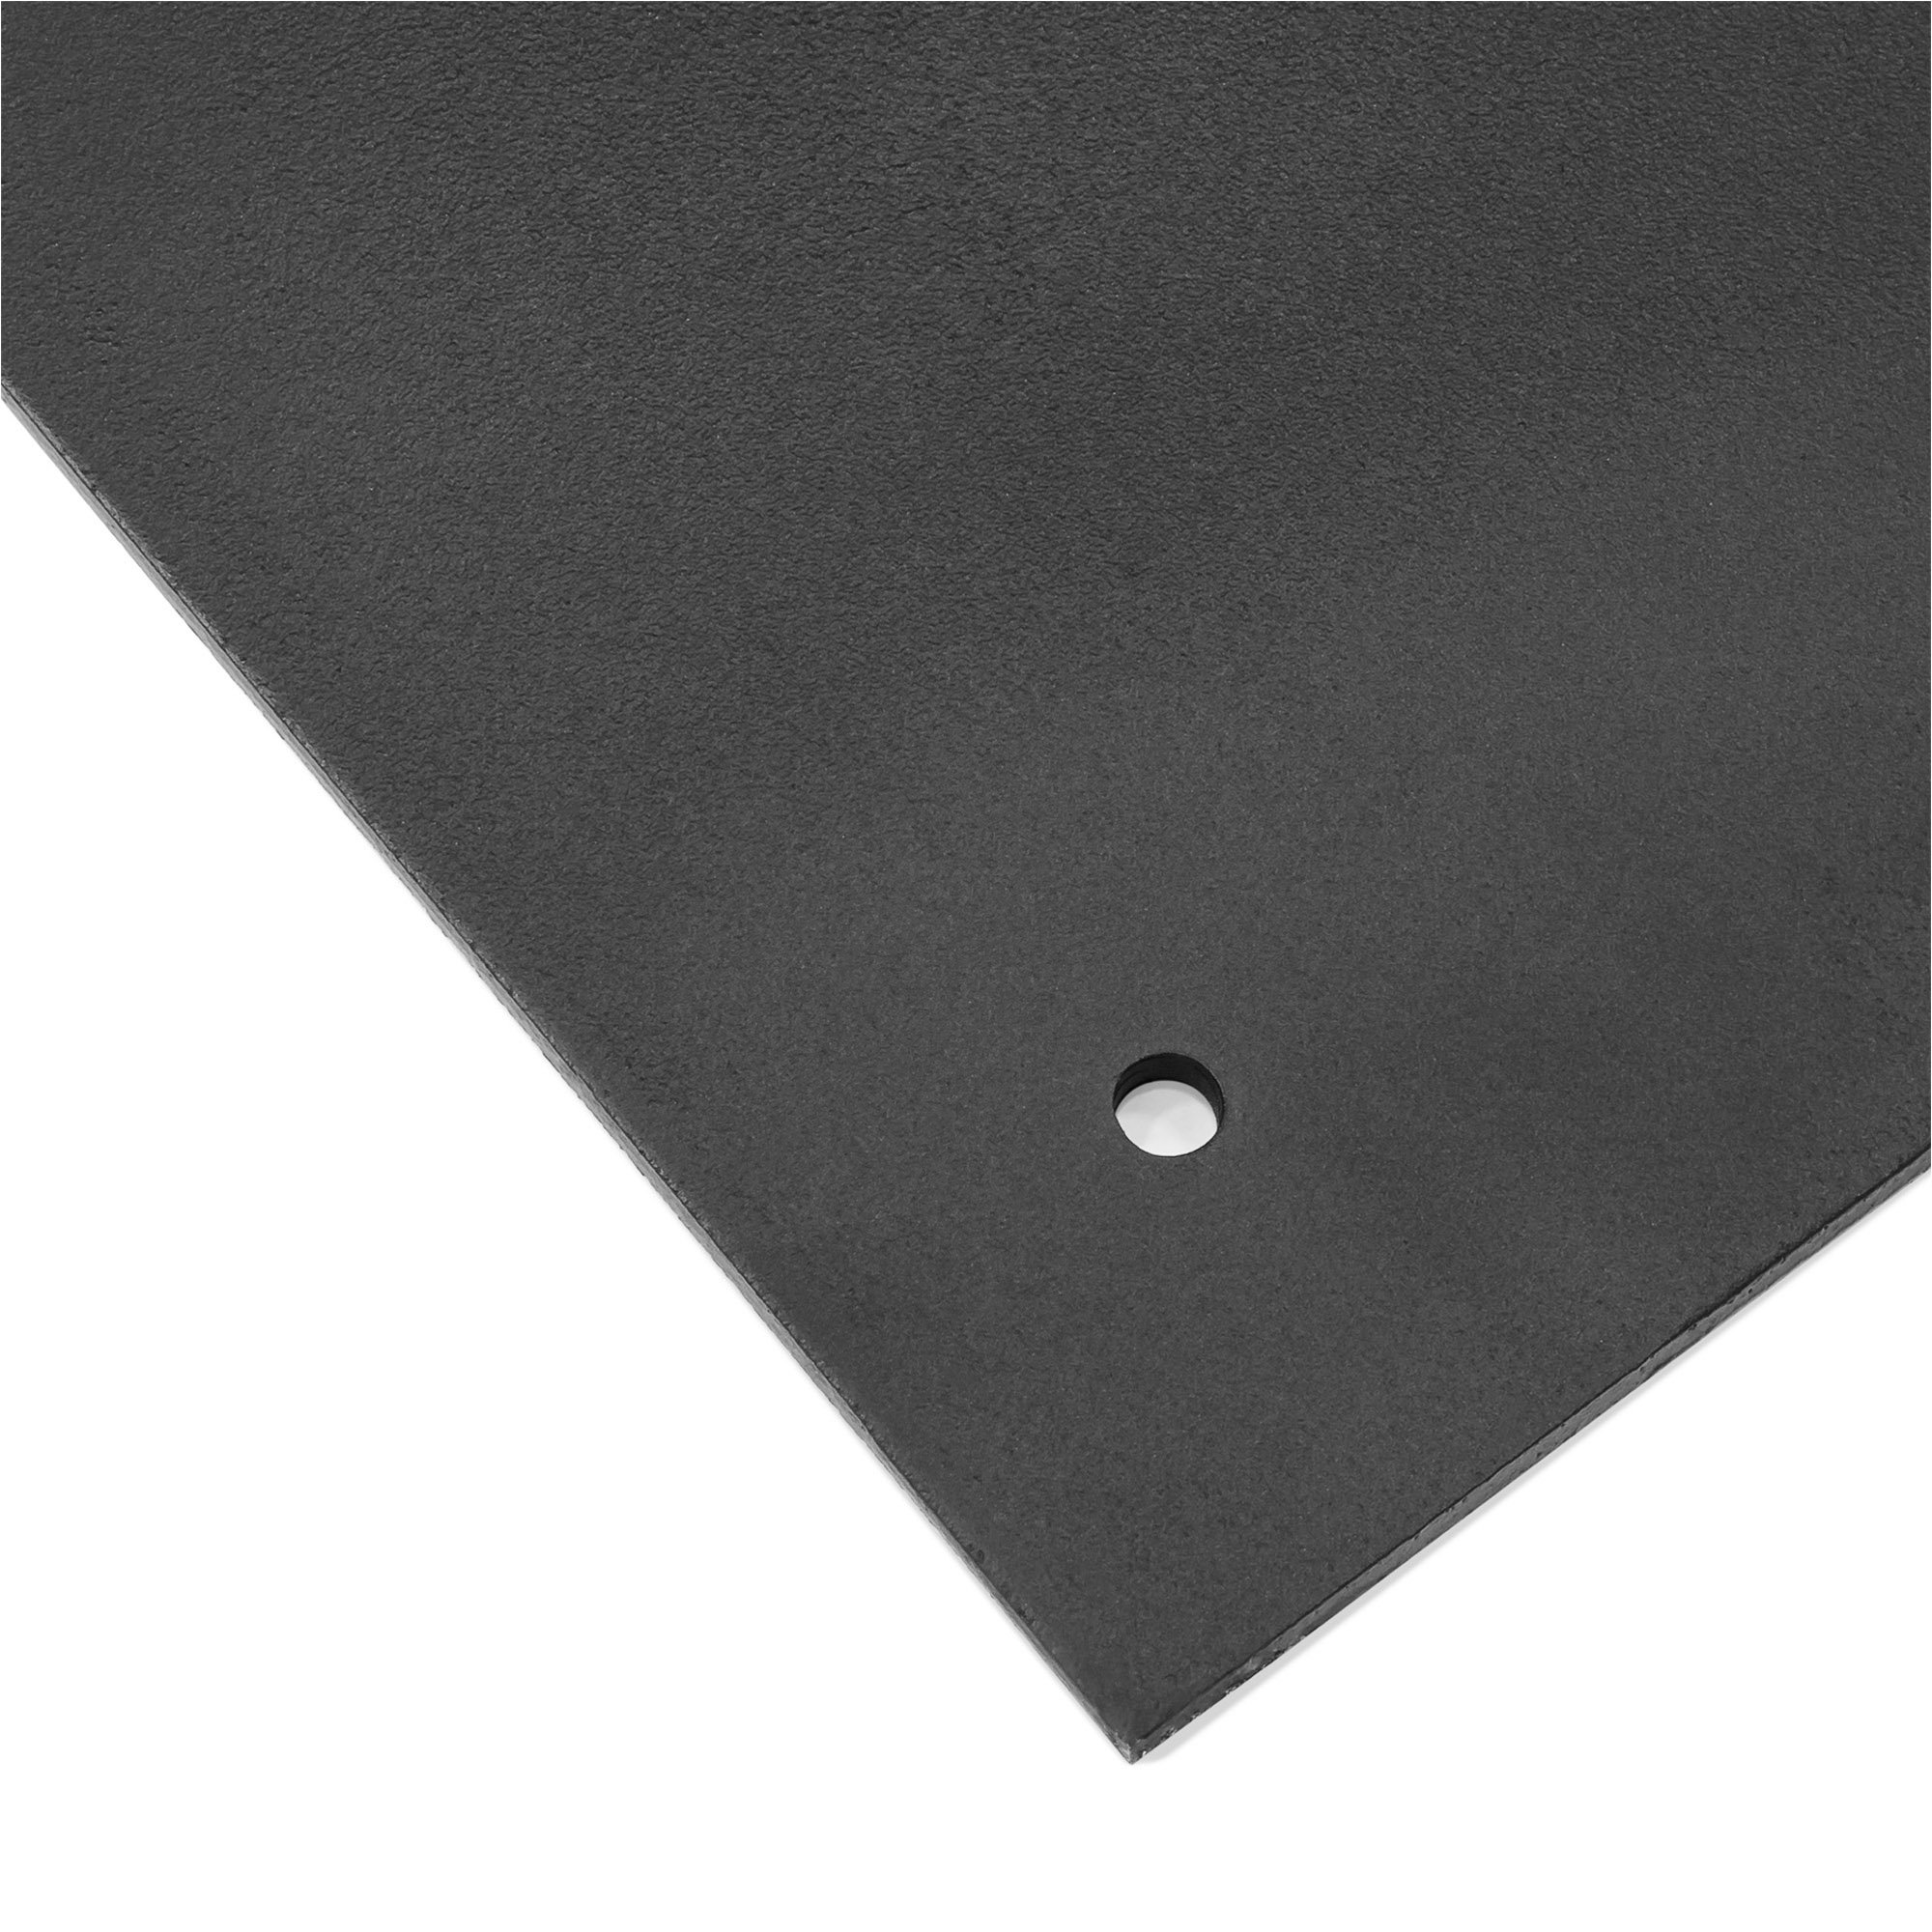 Best Choice Products 38.5lb Steel Square Patio Umbrella Base Stand w/Tightening Knob and Anchor Holes - Black by Best Choice Products (Image #5)